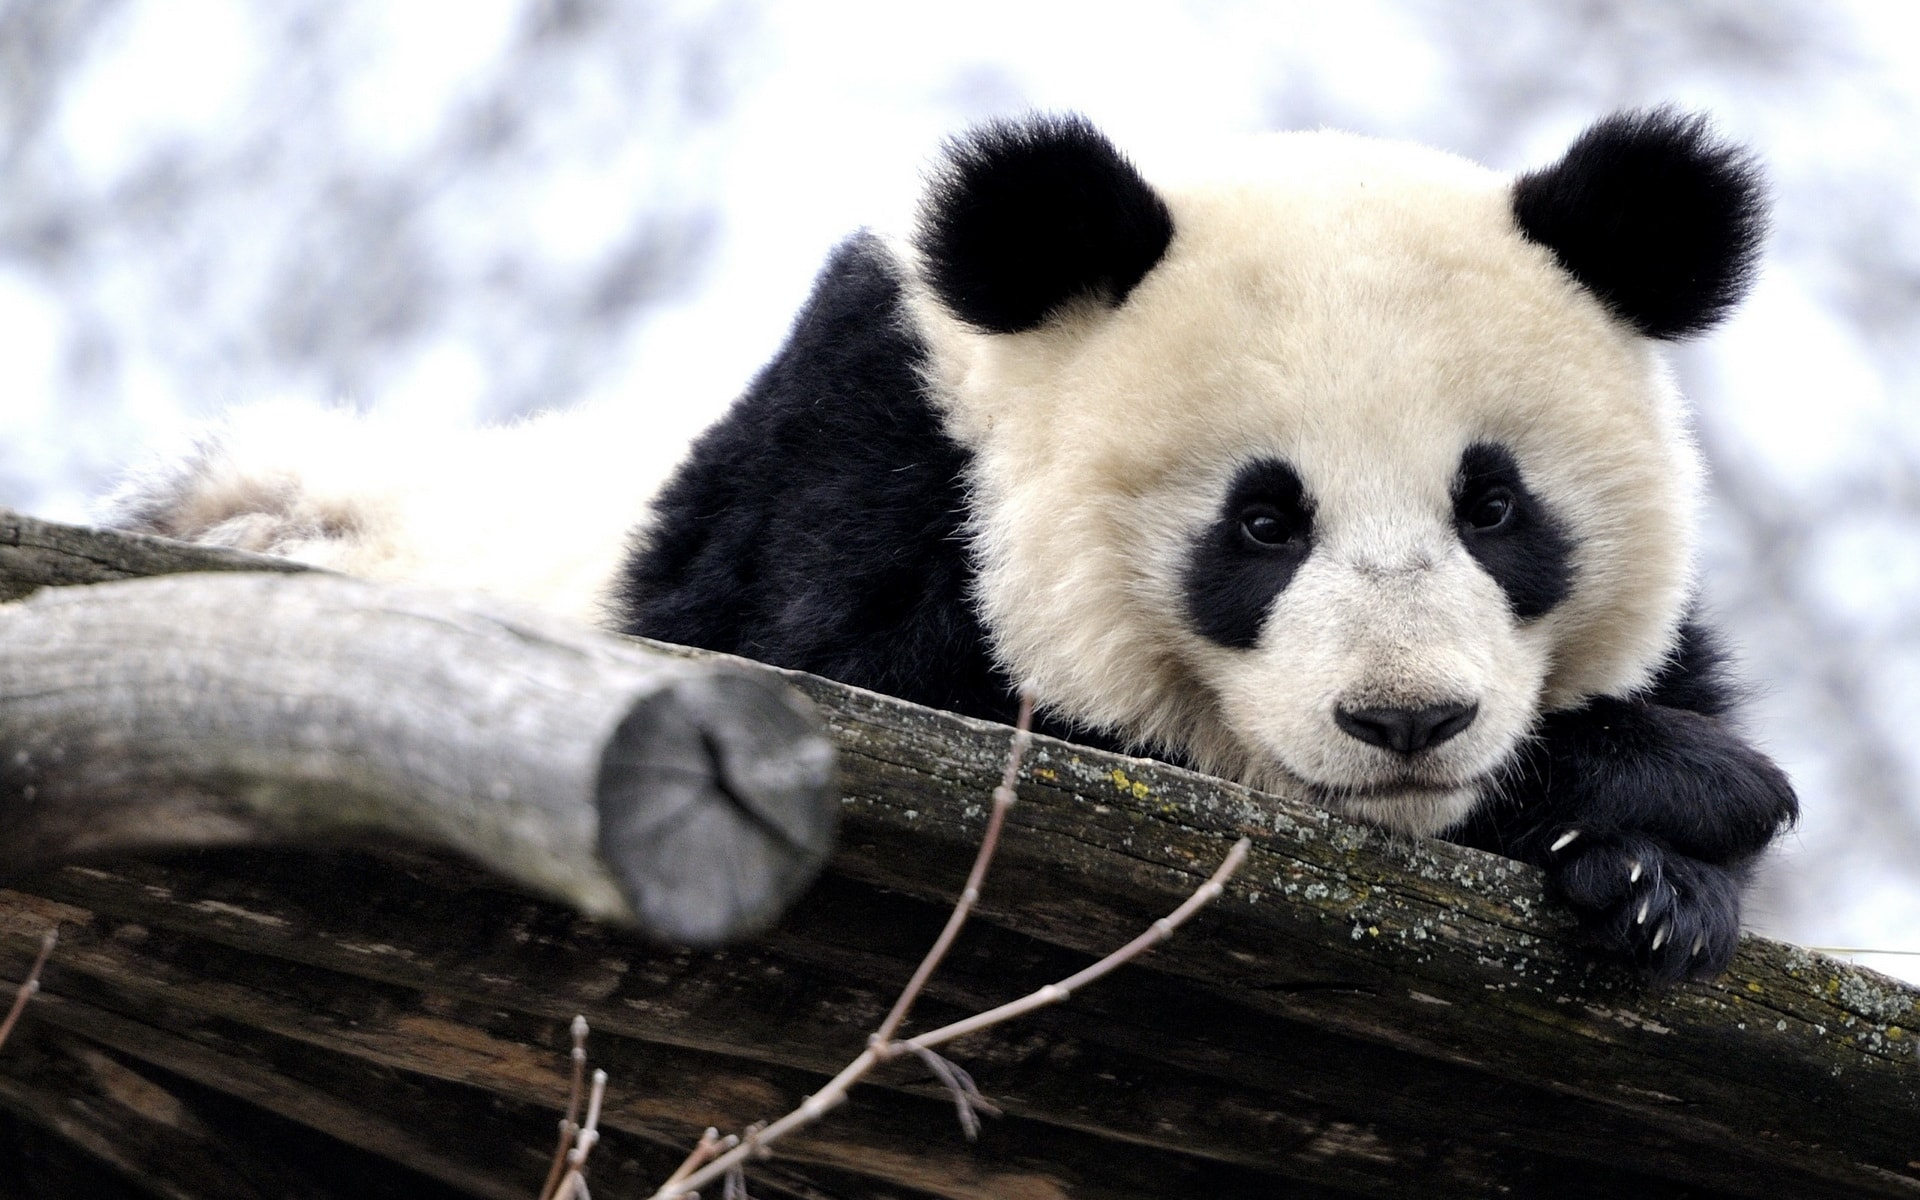 panda pictures hd wallpapers - photo #1